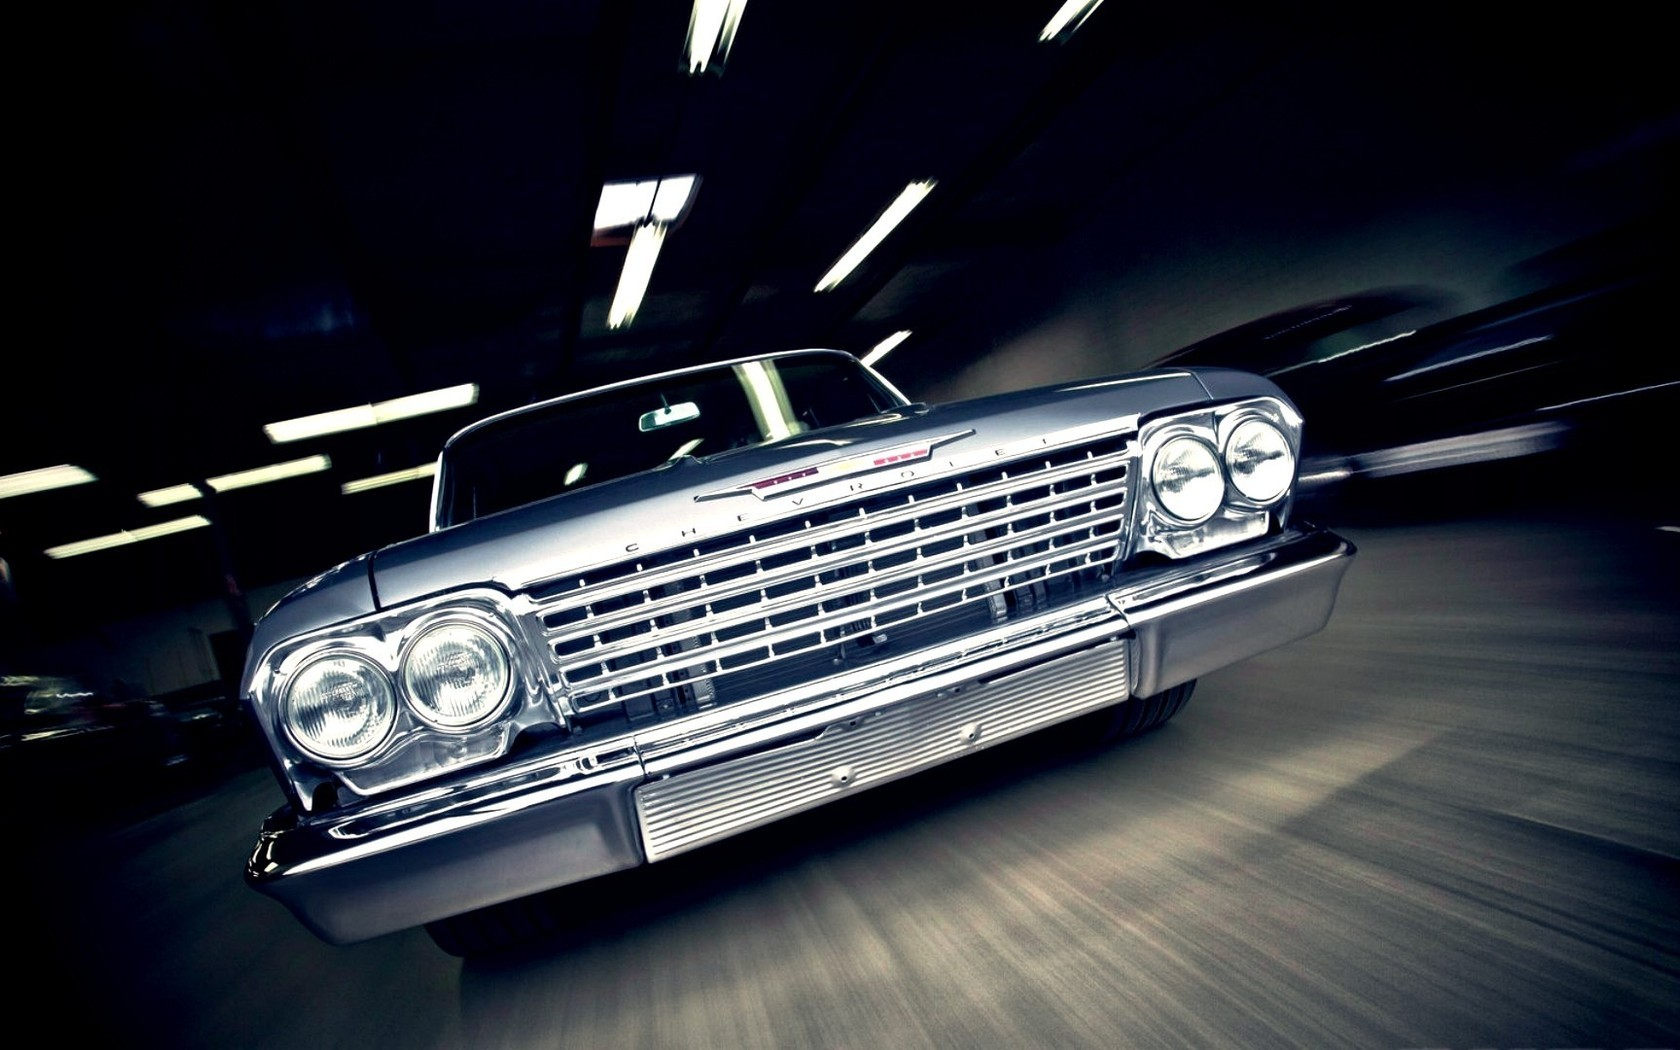 Twin turbo ls9 1962 chevrolet bel air wallpaper and background image vehicles chevrolet wallpaper voltagebd Image collections